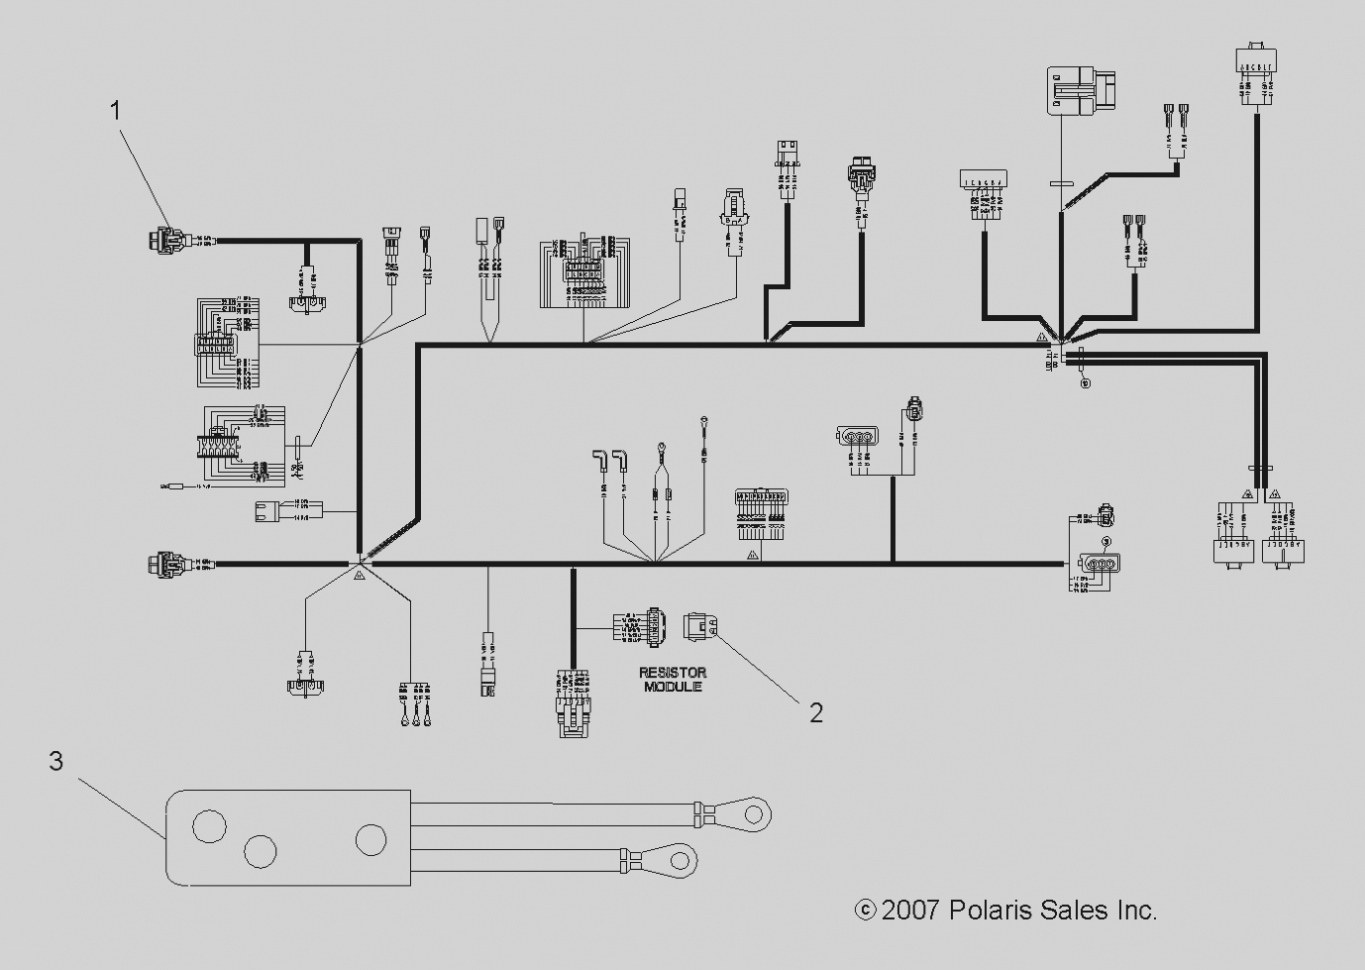 polaris ranger wiring diagram - inspirational 2010 polaris ranger 800 xp wiring  diagram 2011 9m